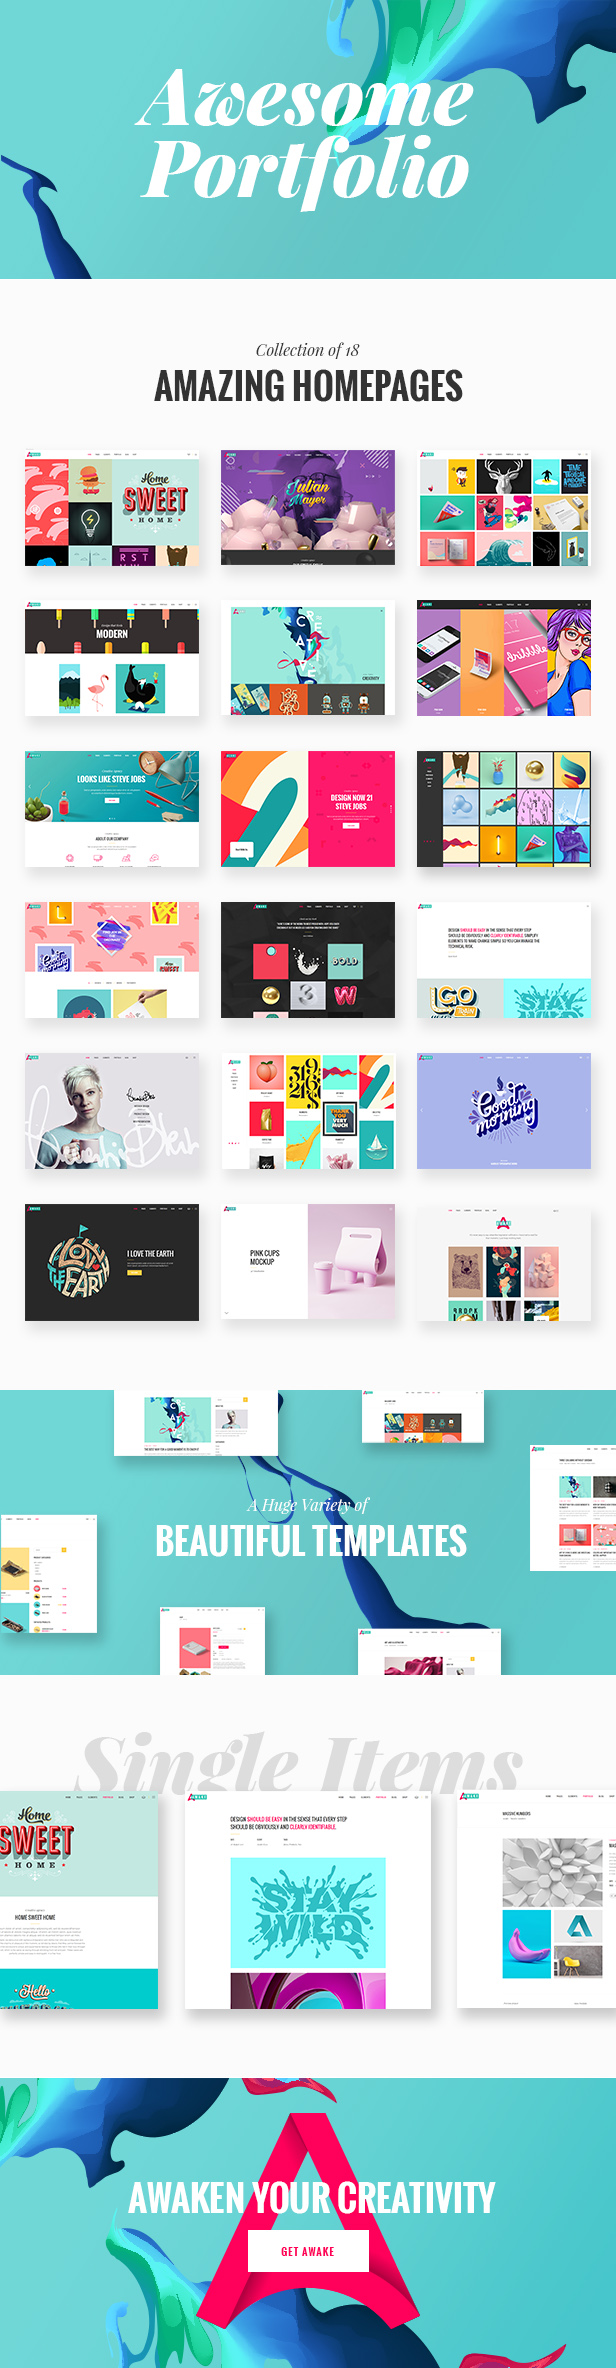 Awake - A Vibrant and Fresh Portfolio Theme - 1